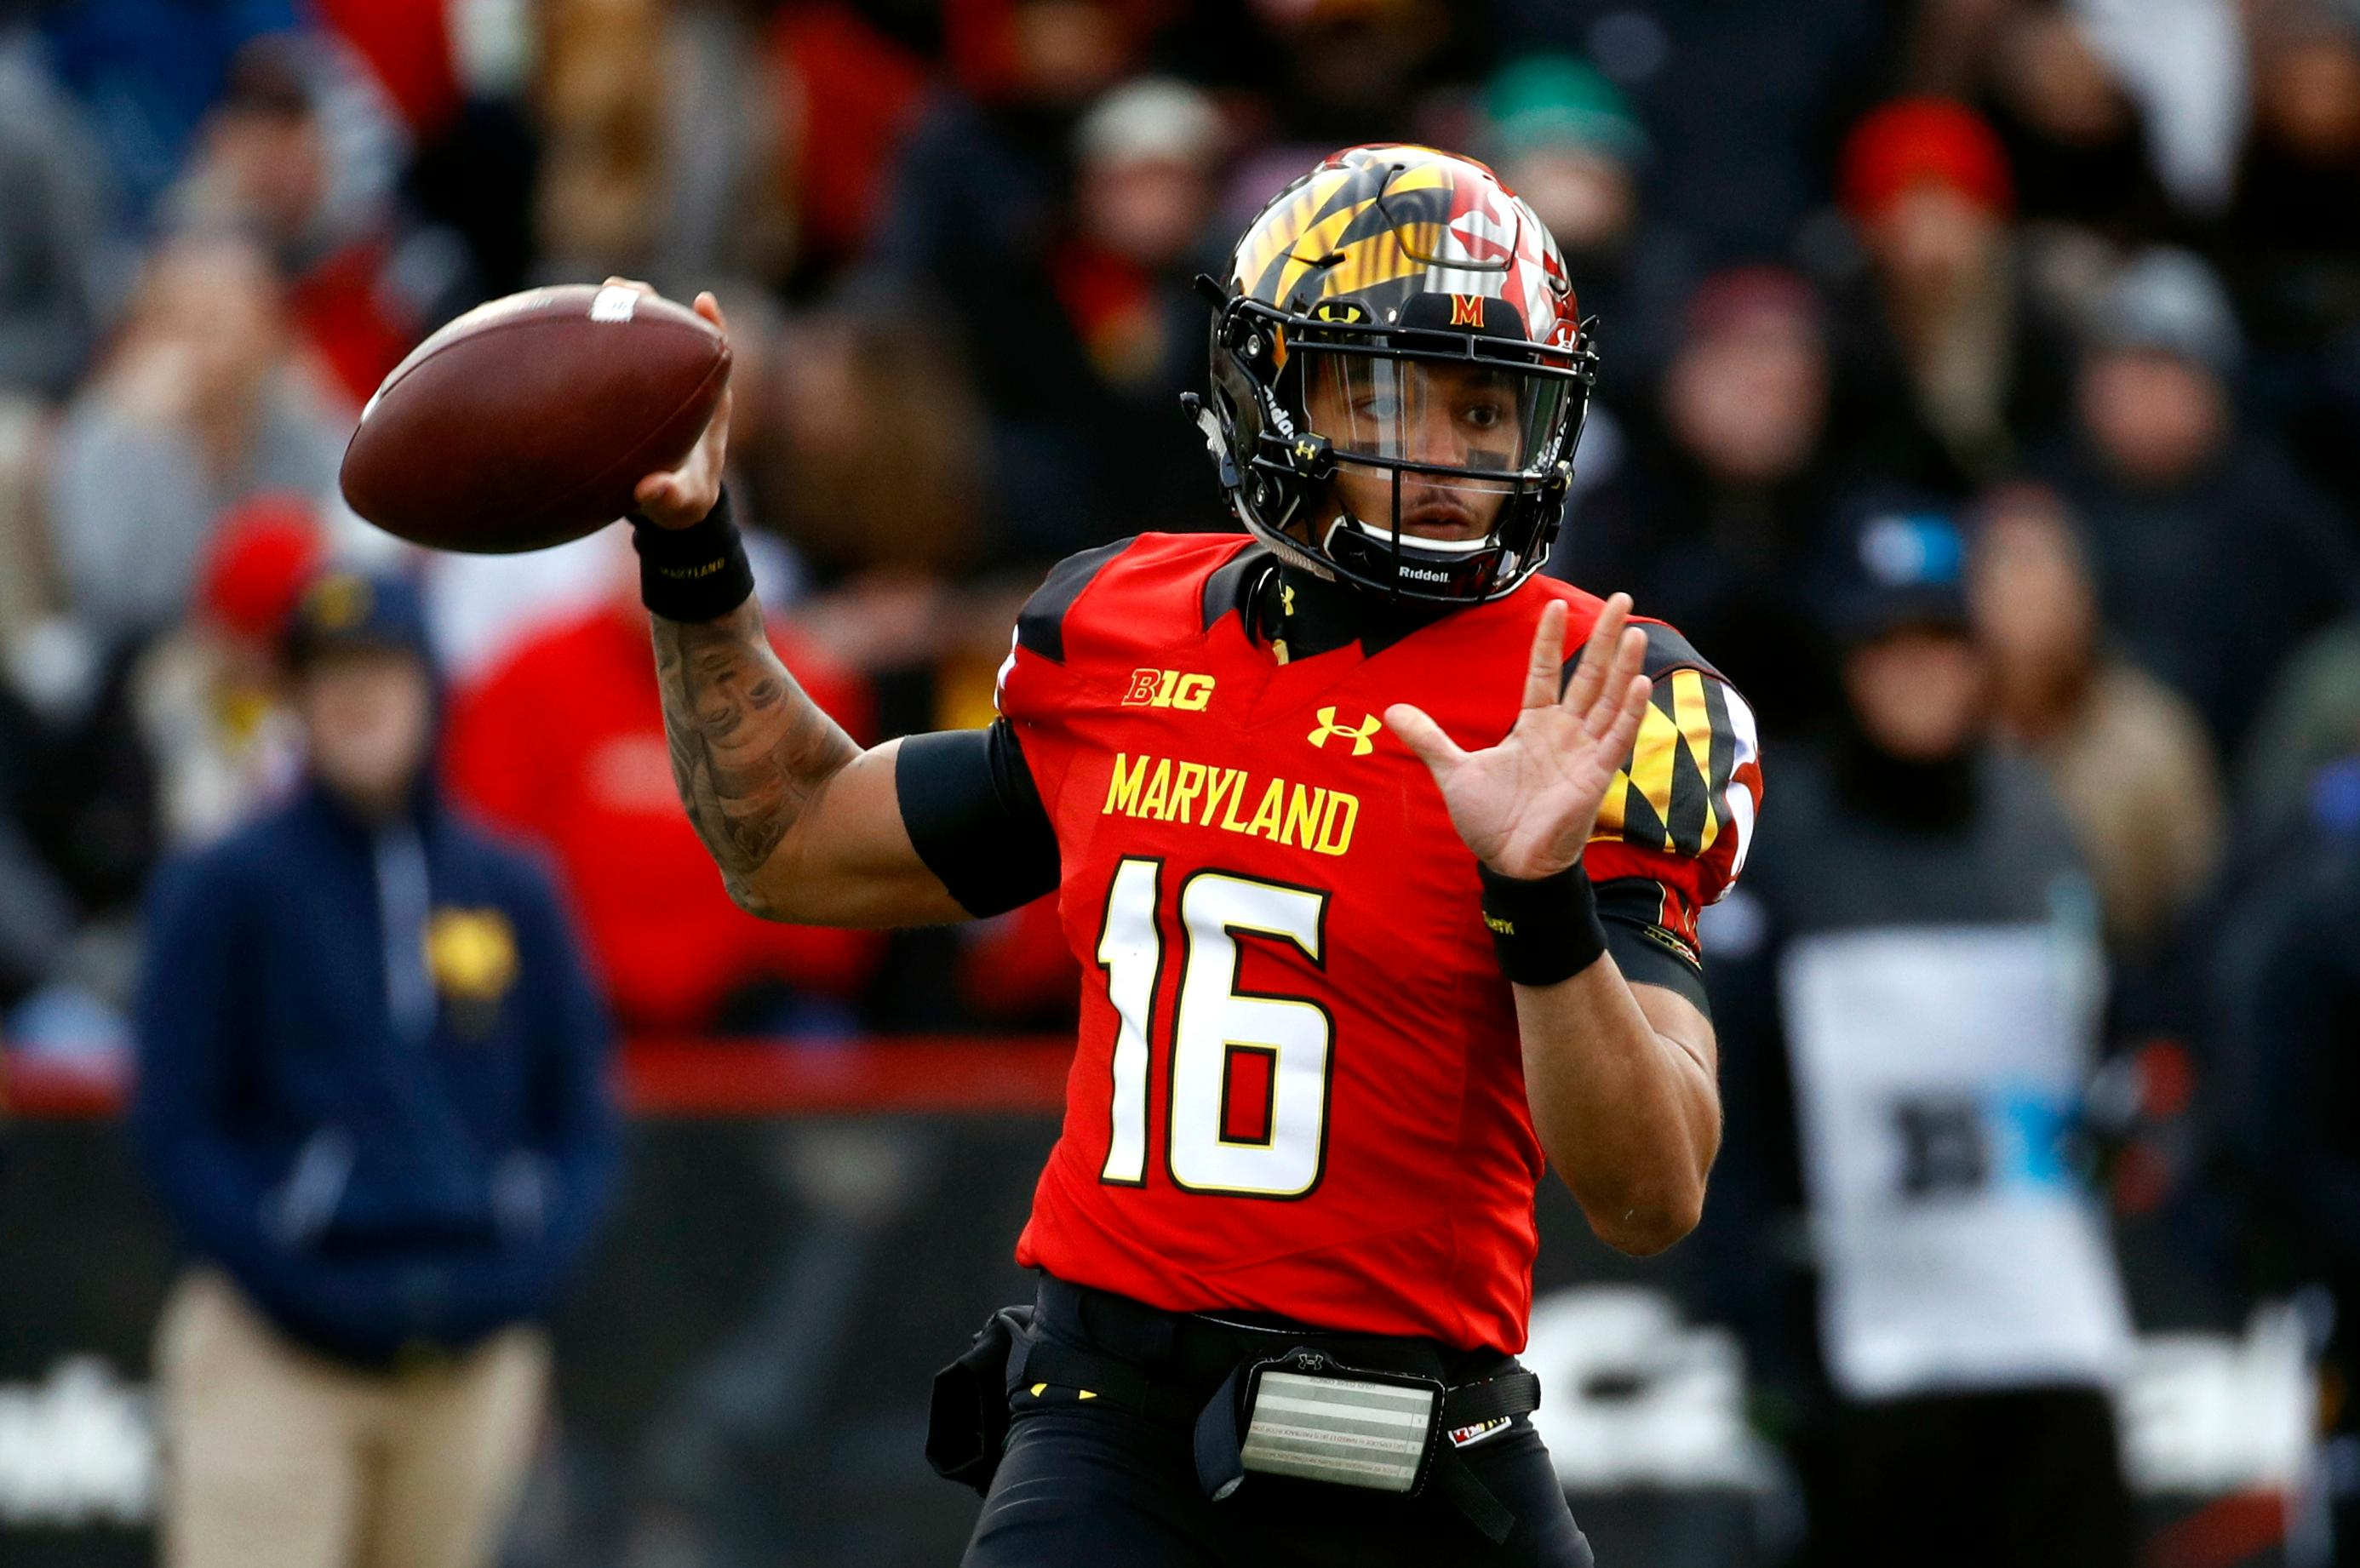 Maryland quarterback Ryan Brand throws to a receiver in the first half of an NCAA college football game against Michigan in College Park, Md., Saturday, Nov. 11, 2017. (AP Photo/Patrick Semansky)